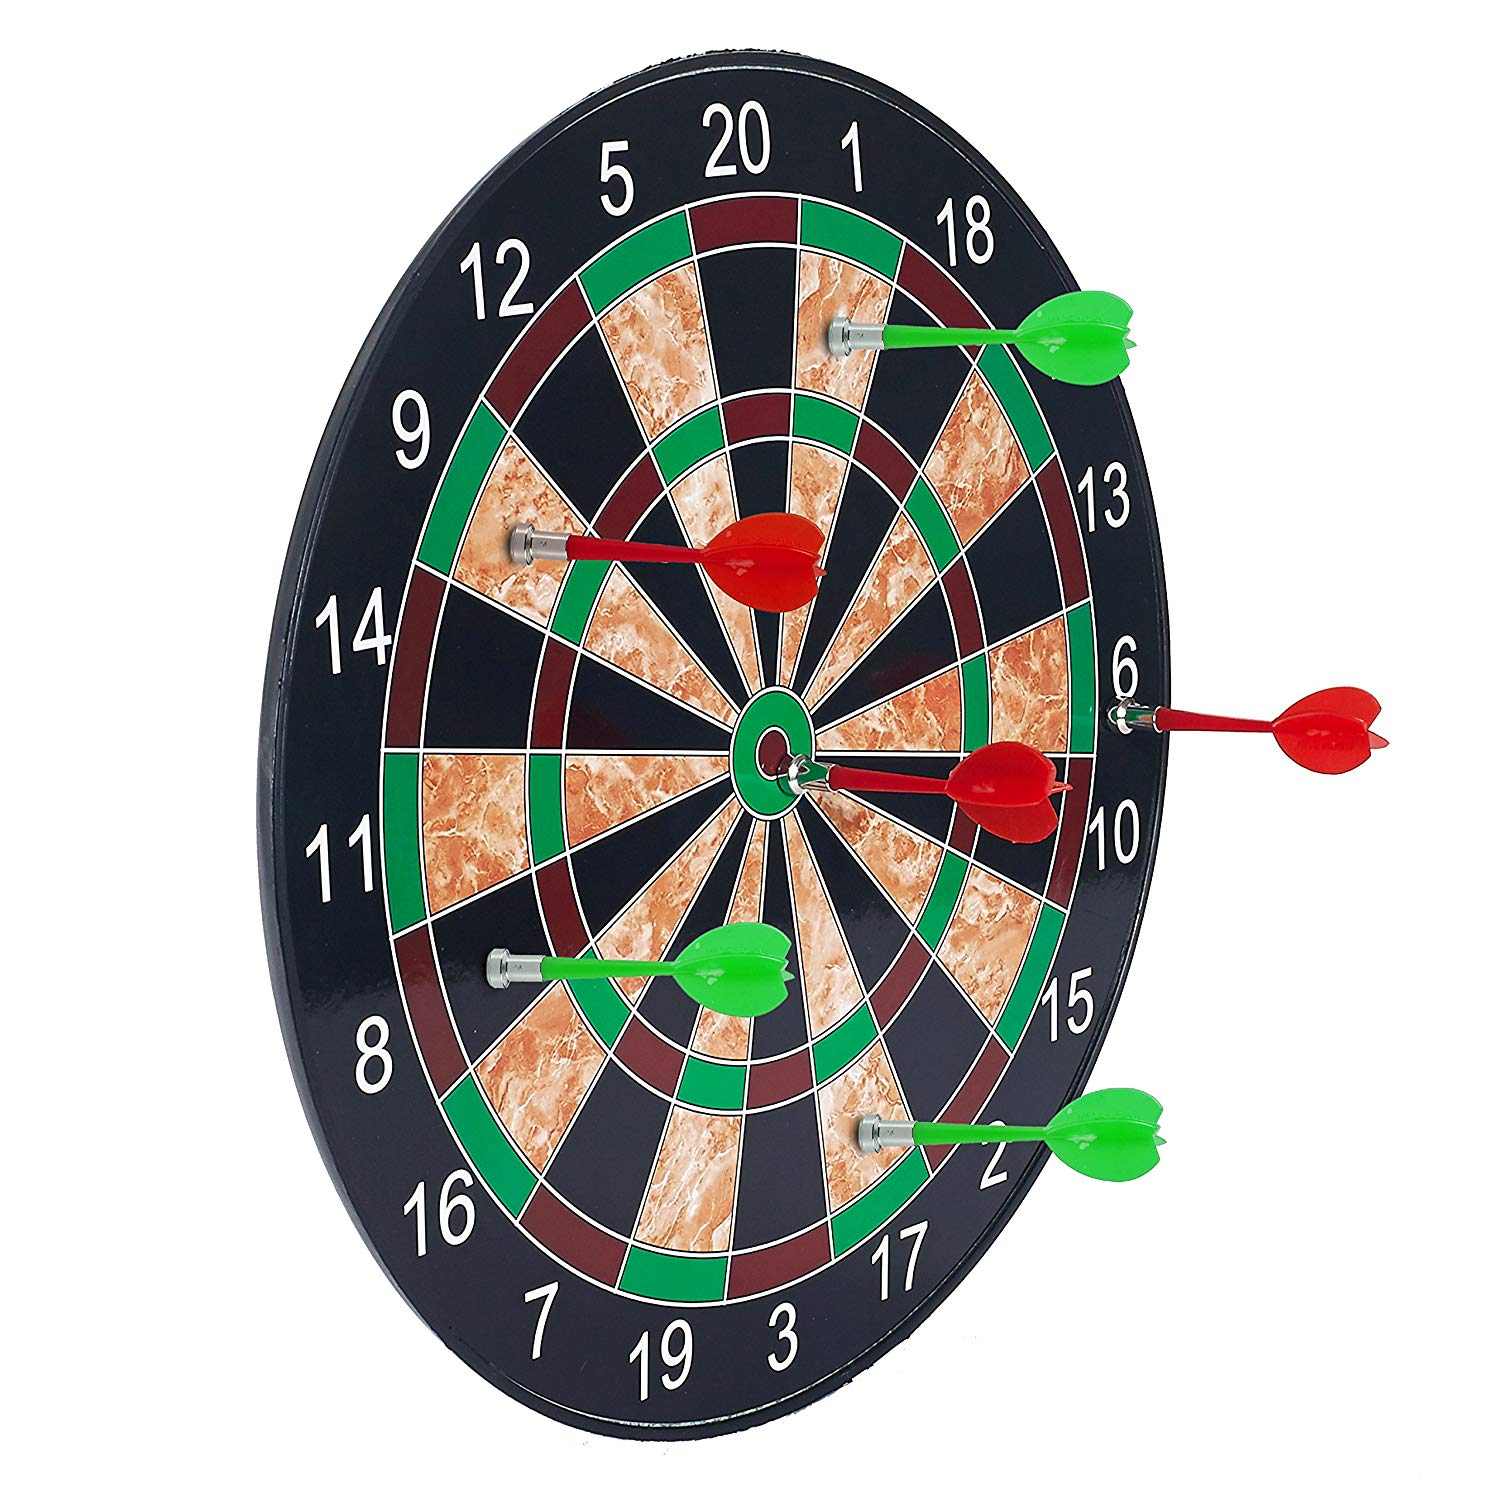 Other Games Mozlly Magnetic Dartboard Game Darts Toys & Hobbies